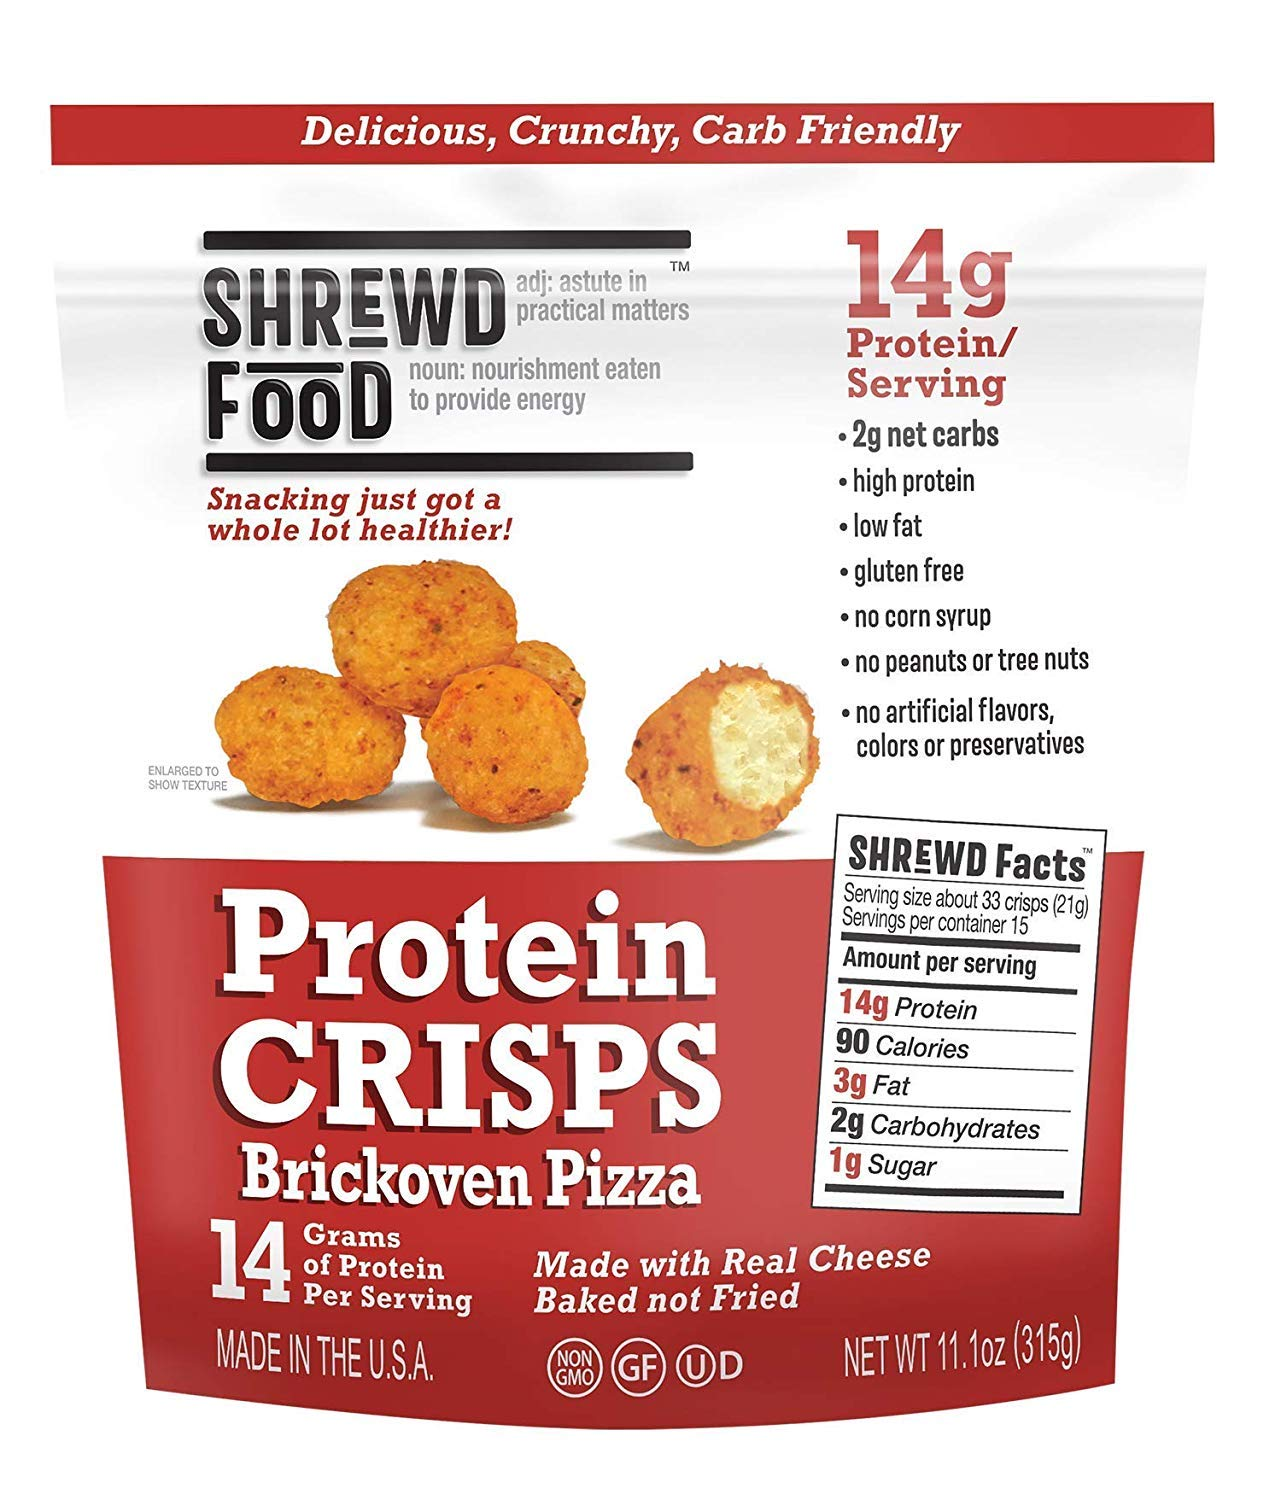 Shrewd Food Protein Puffs, Low Carb Cheese Pizza Puffs, High Protein Crunch, Keto Friendly Snack, Savory Protein Chip, 14g Protein Per Serving, 2g Carbs, Brick Oven Pizza, 15 Serving -Family Size